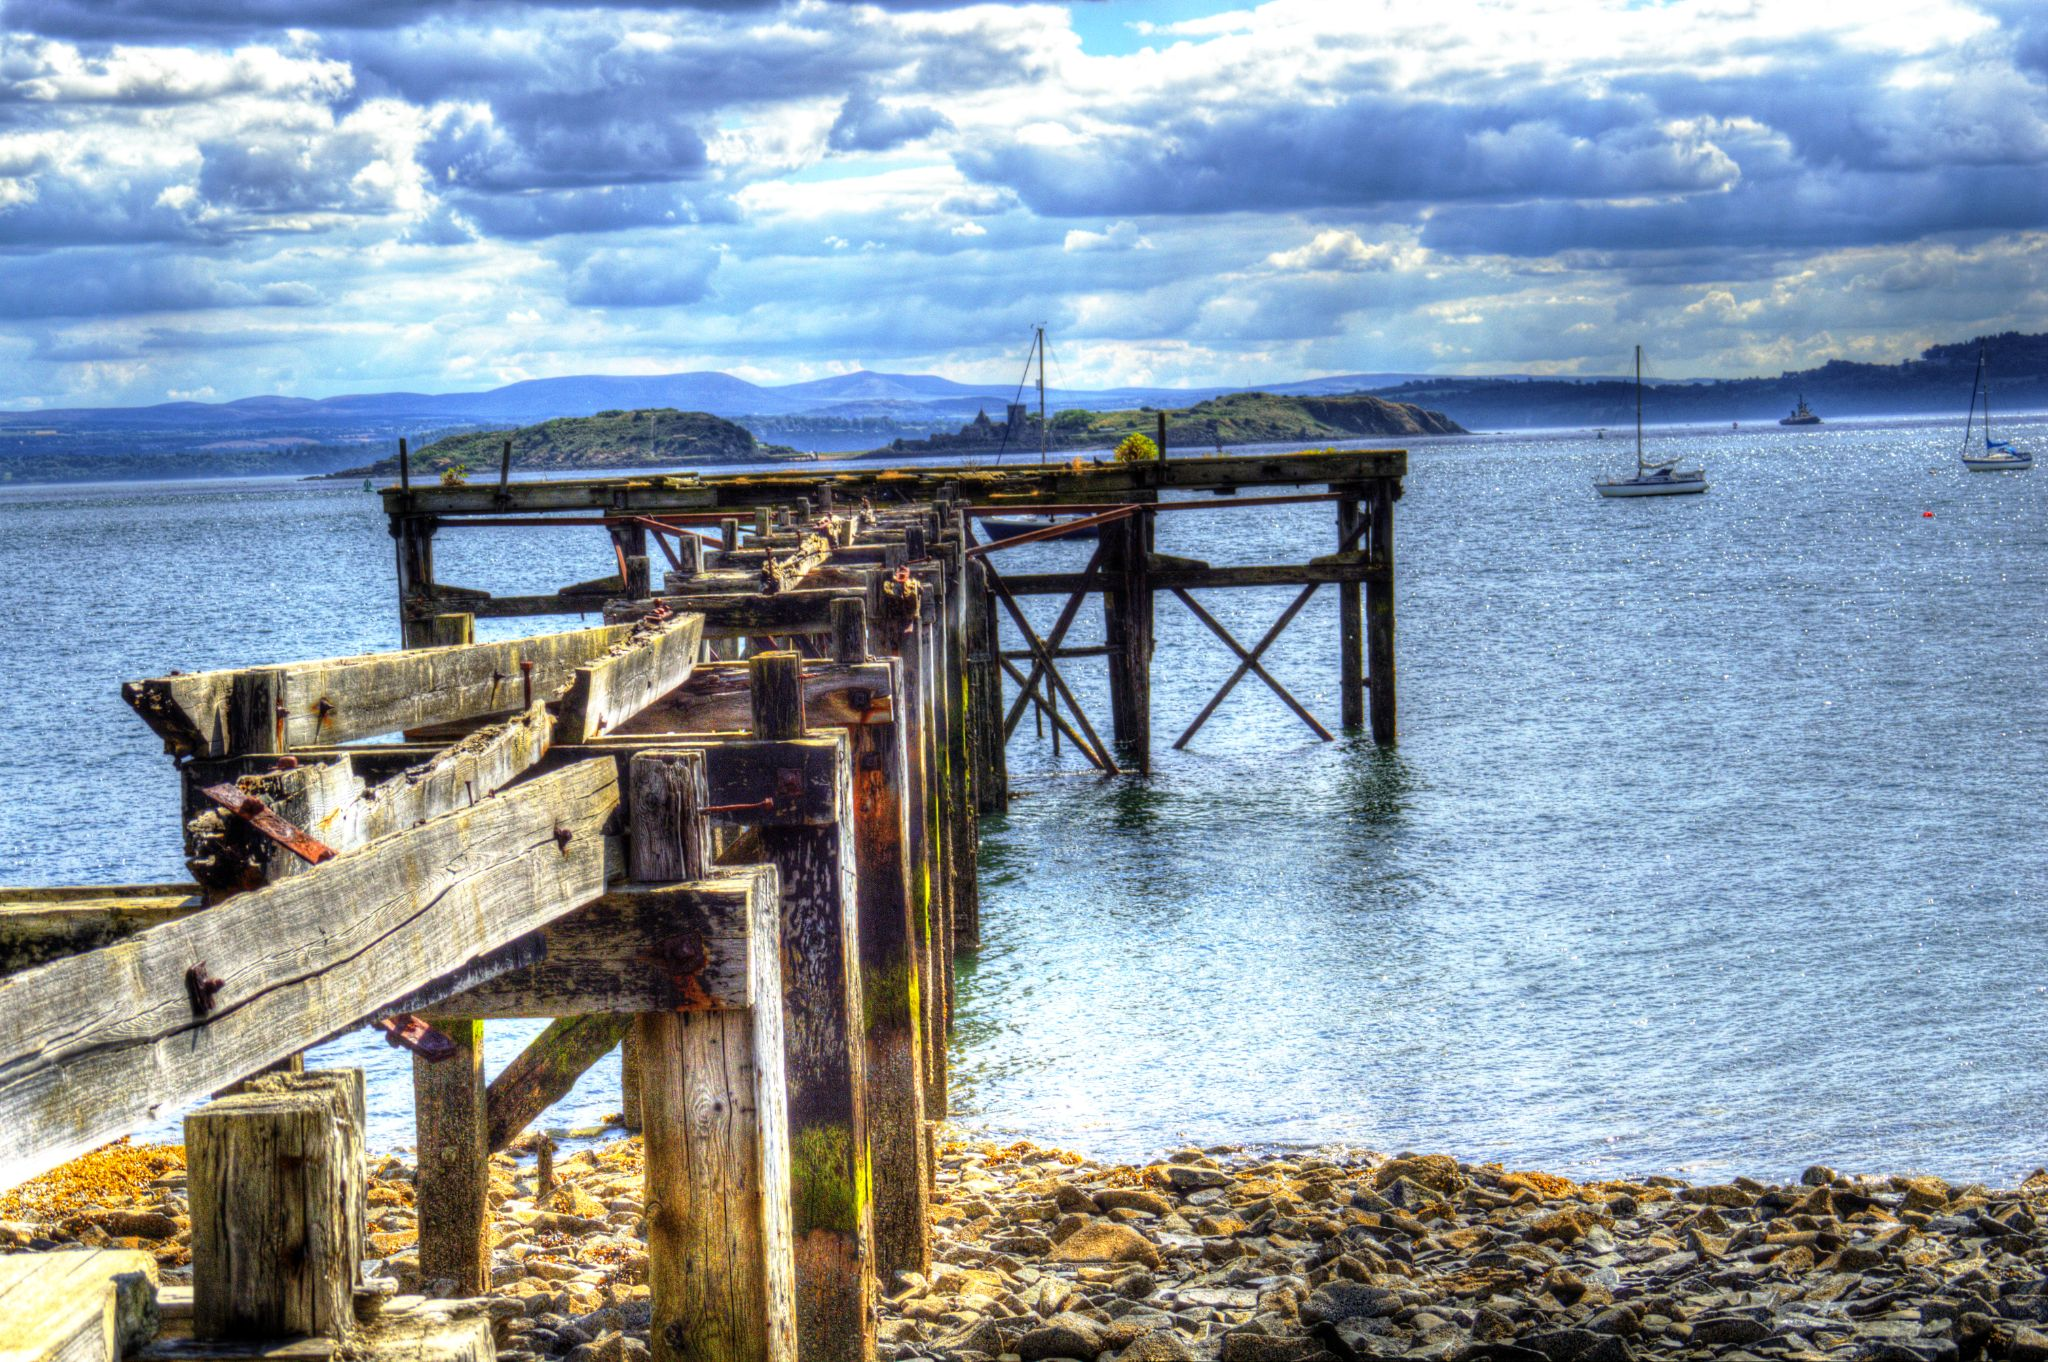 Pier at Aberdour looking out to River Forth, Fife by Rob